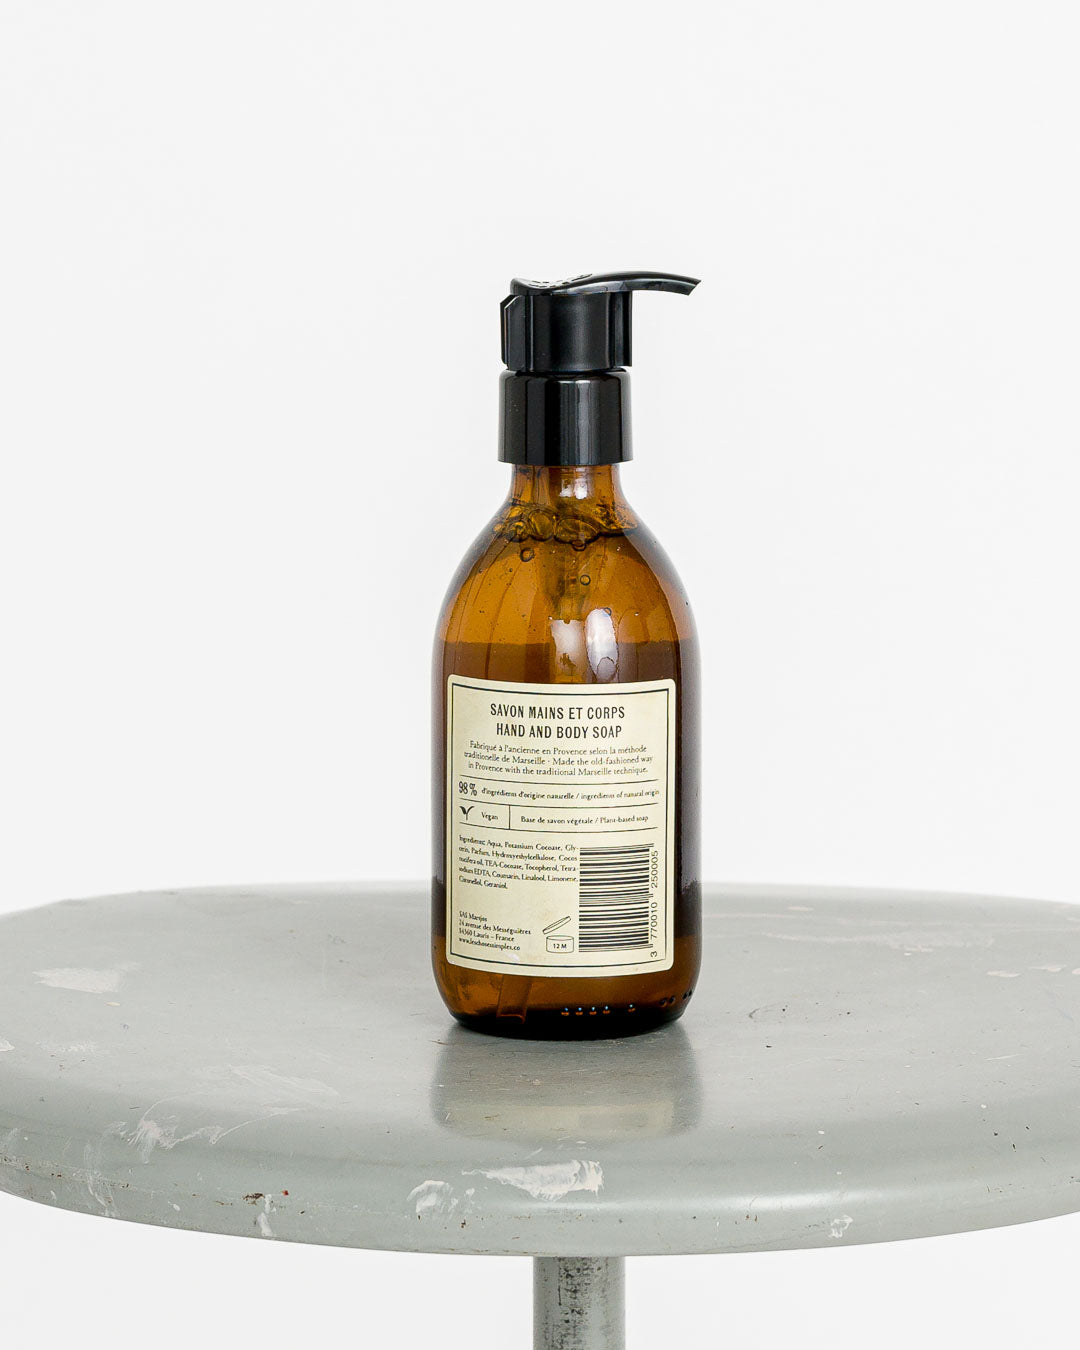 Les Choses Simples // Hand Soap Manon No. 1